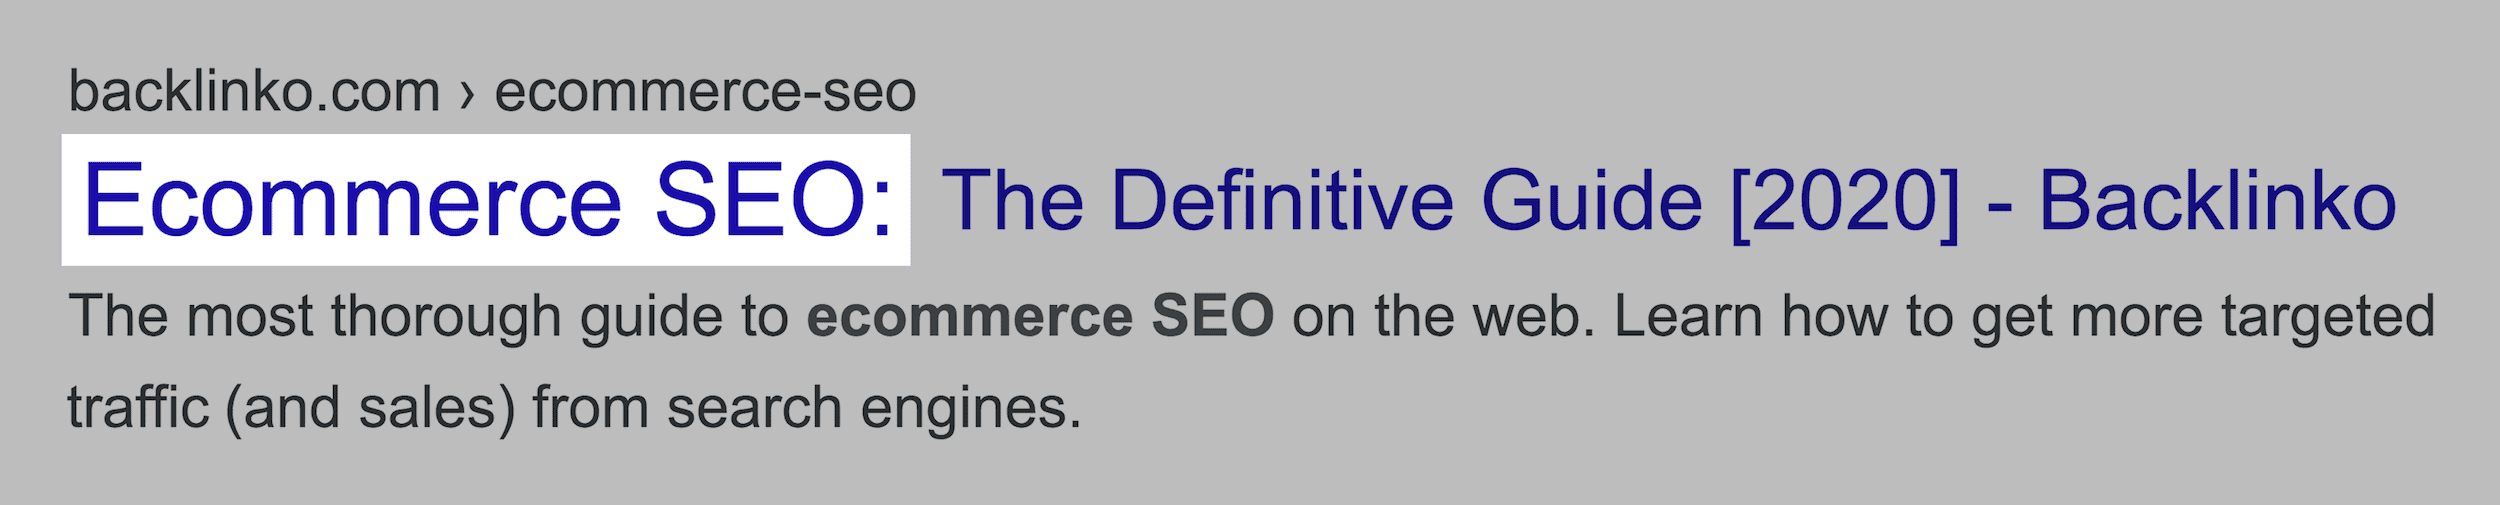 Ecommerce SEO post in SERPs